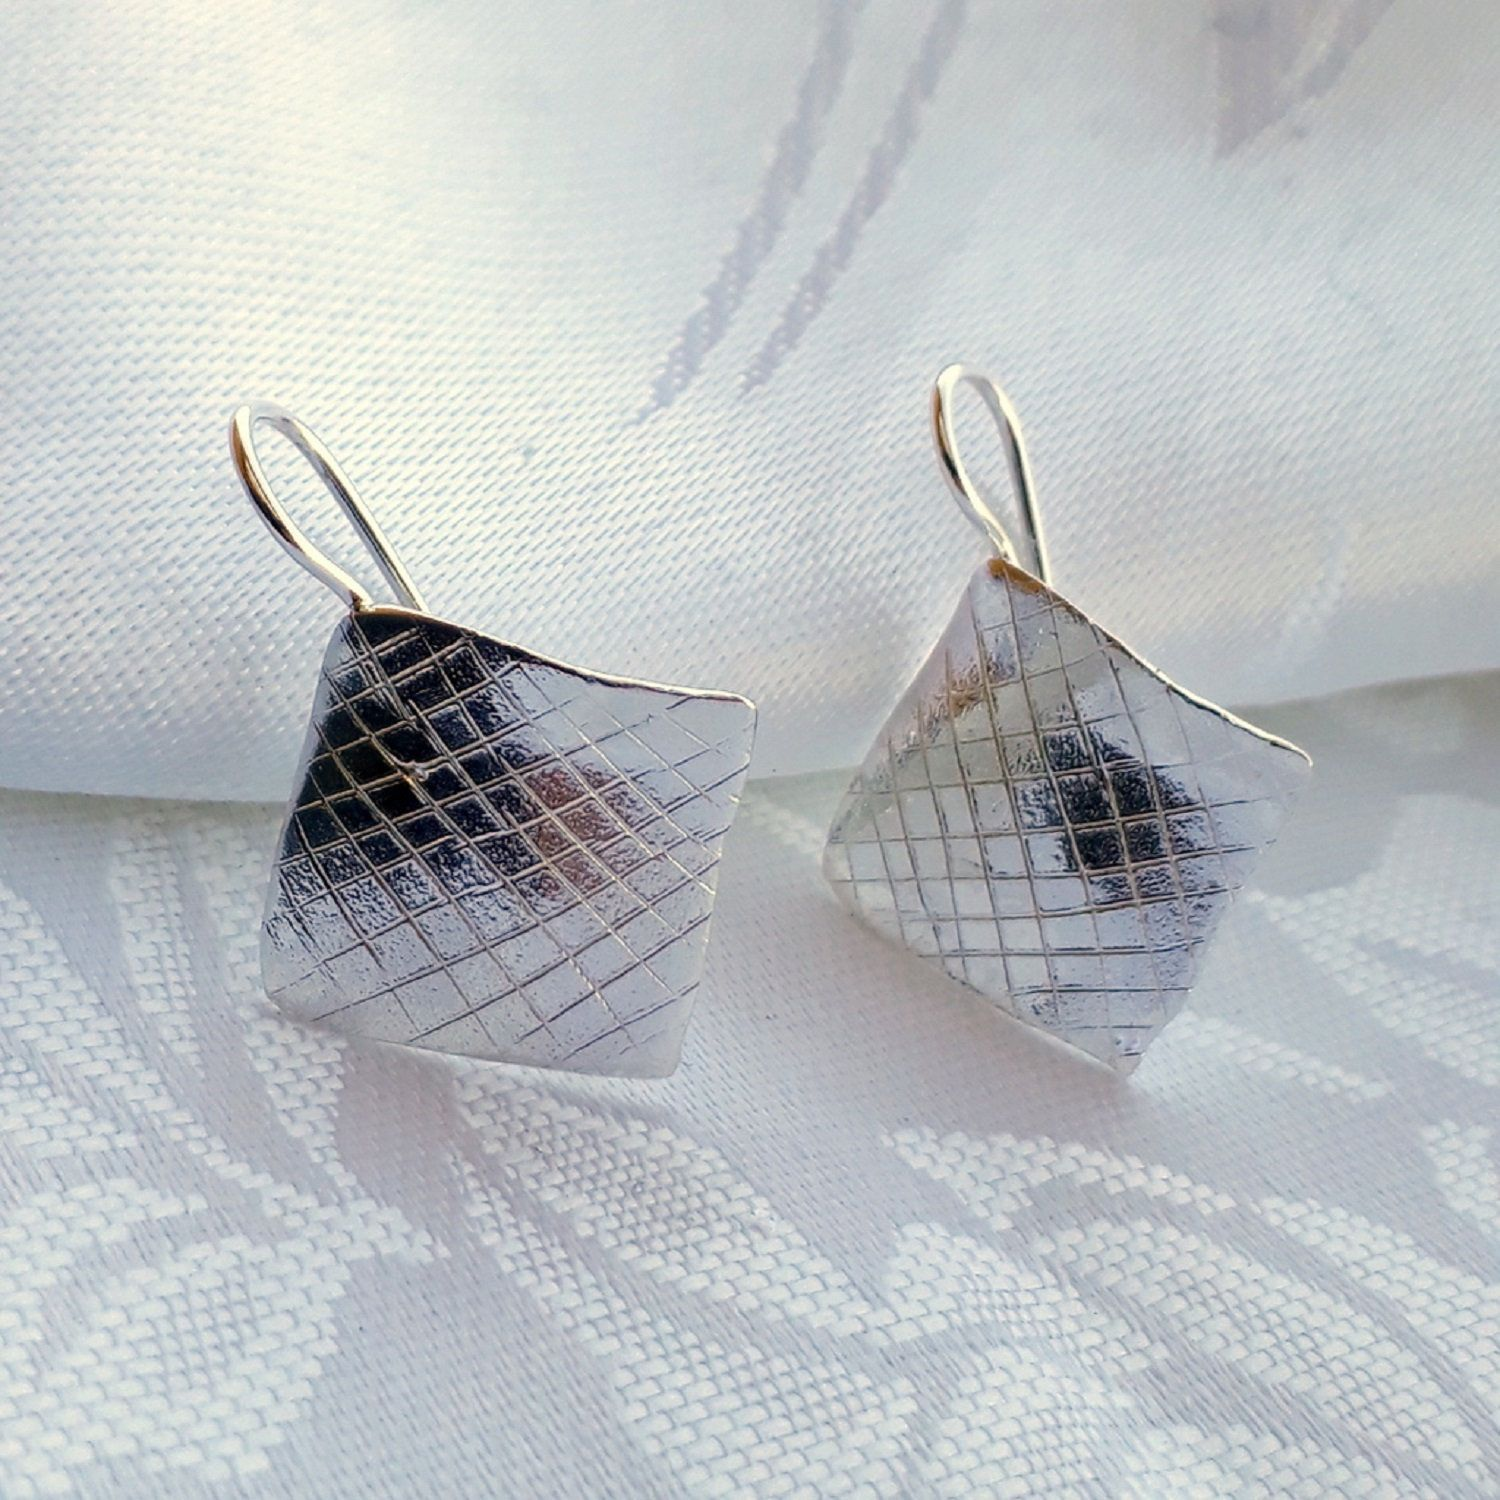 Square and silver-leaf earrings